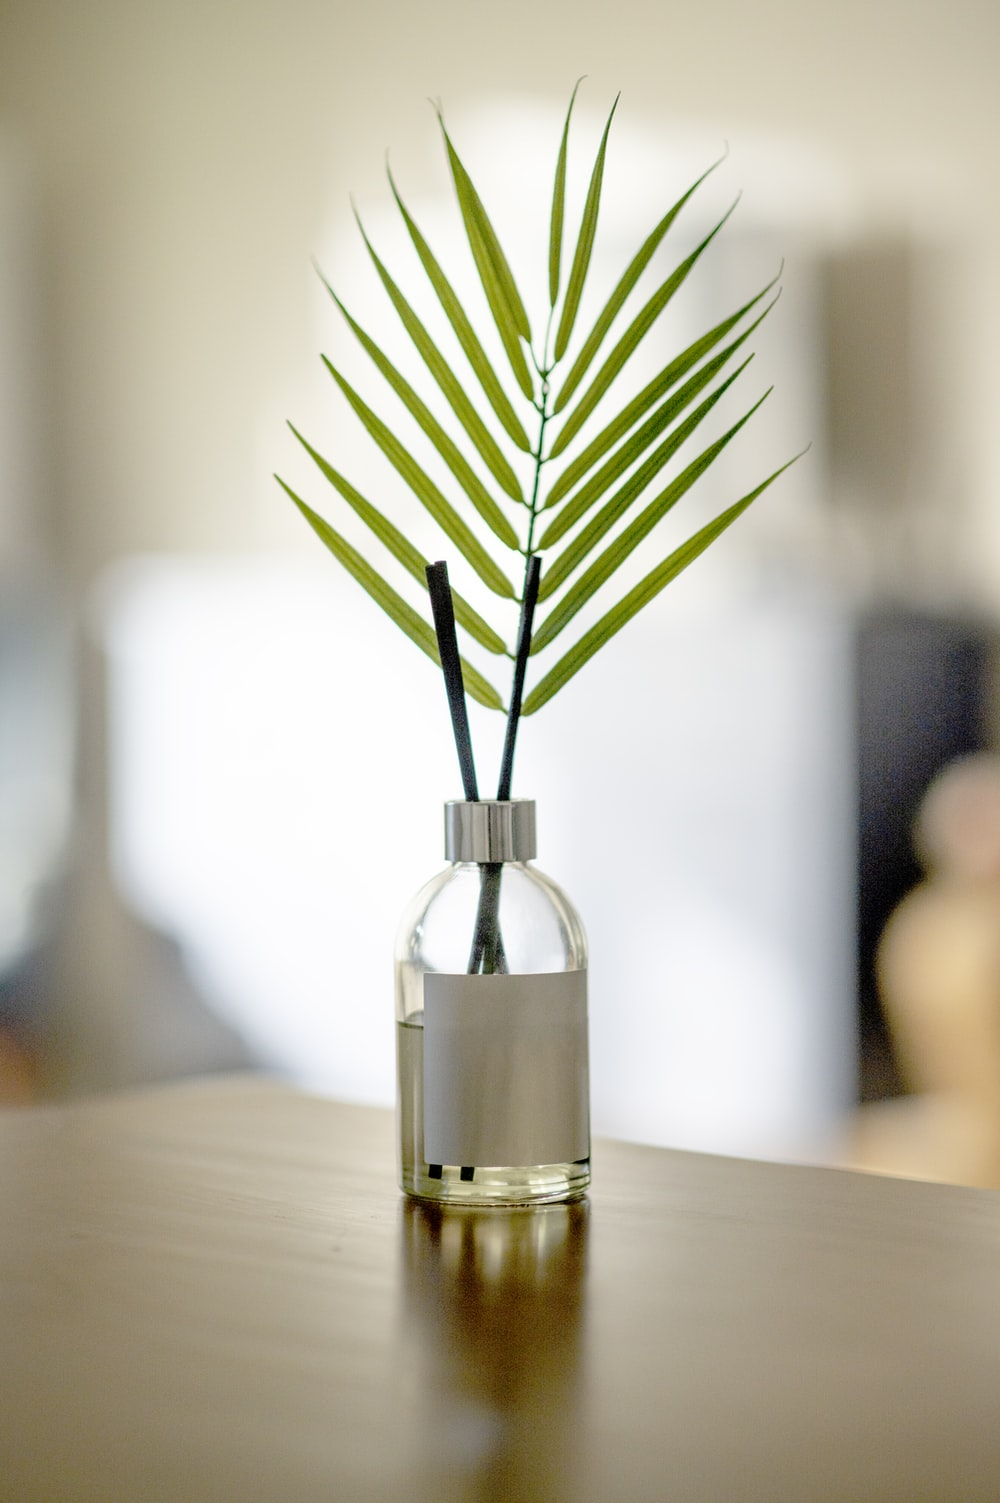 green plant in clear glass bottle on brown wooden table